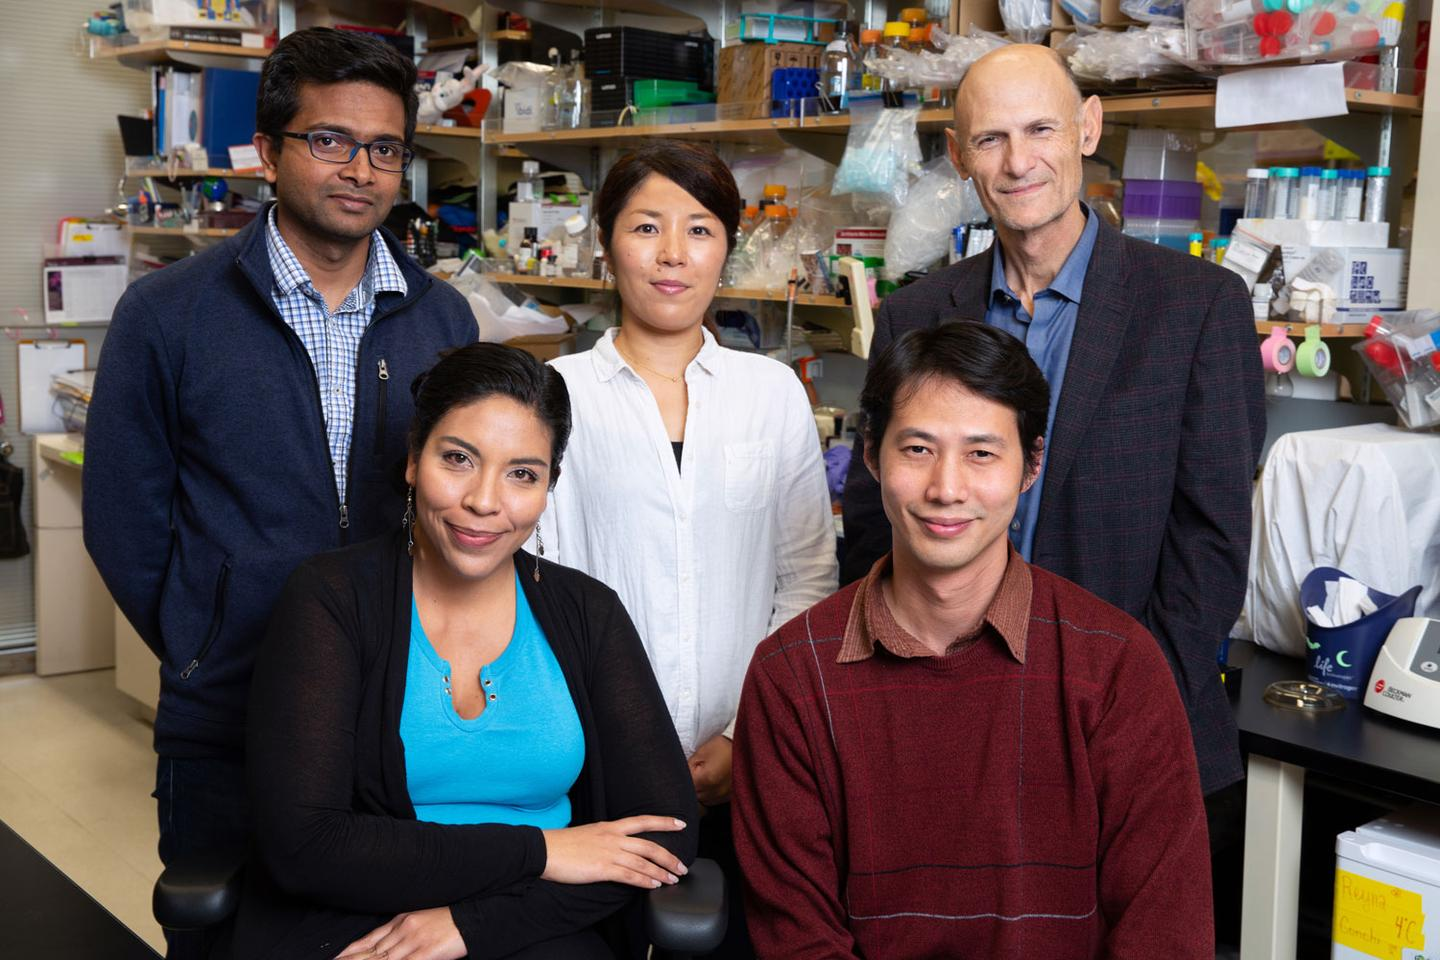 Pradeep Reddy (front left) was a member of a research team at the Salk Institute that has developed a promising anti-aging technology using the CRISPR gene-editing tool